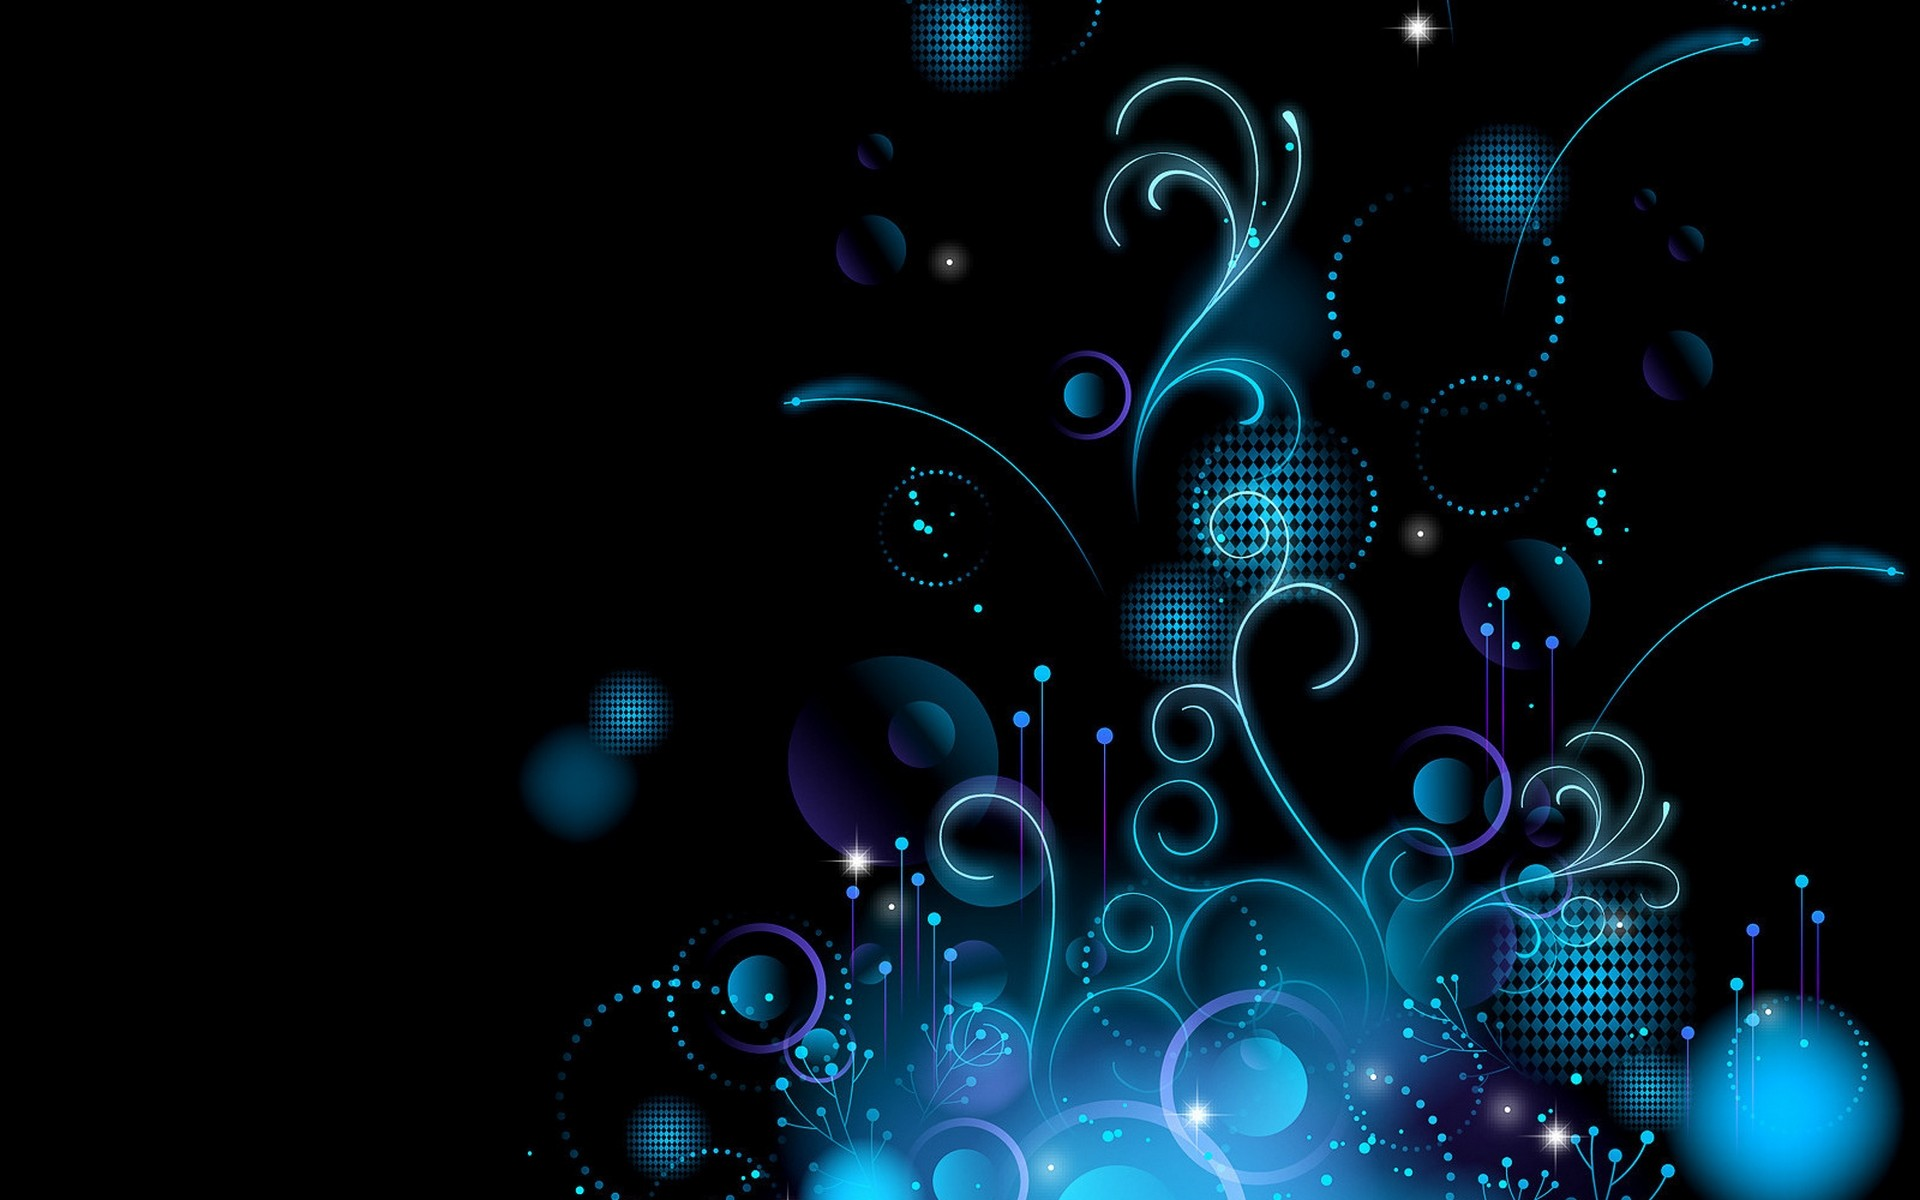 3D High Resolution Wallpapers 65+ images